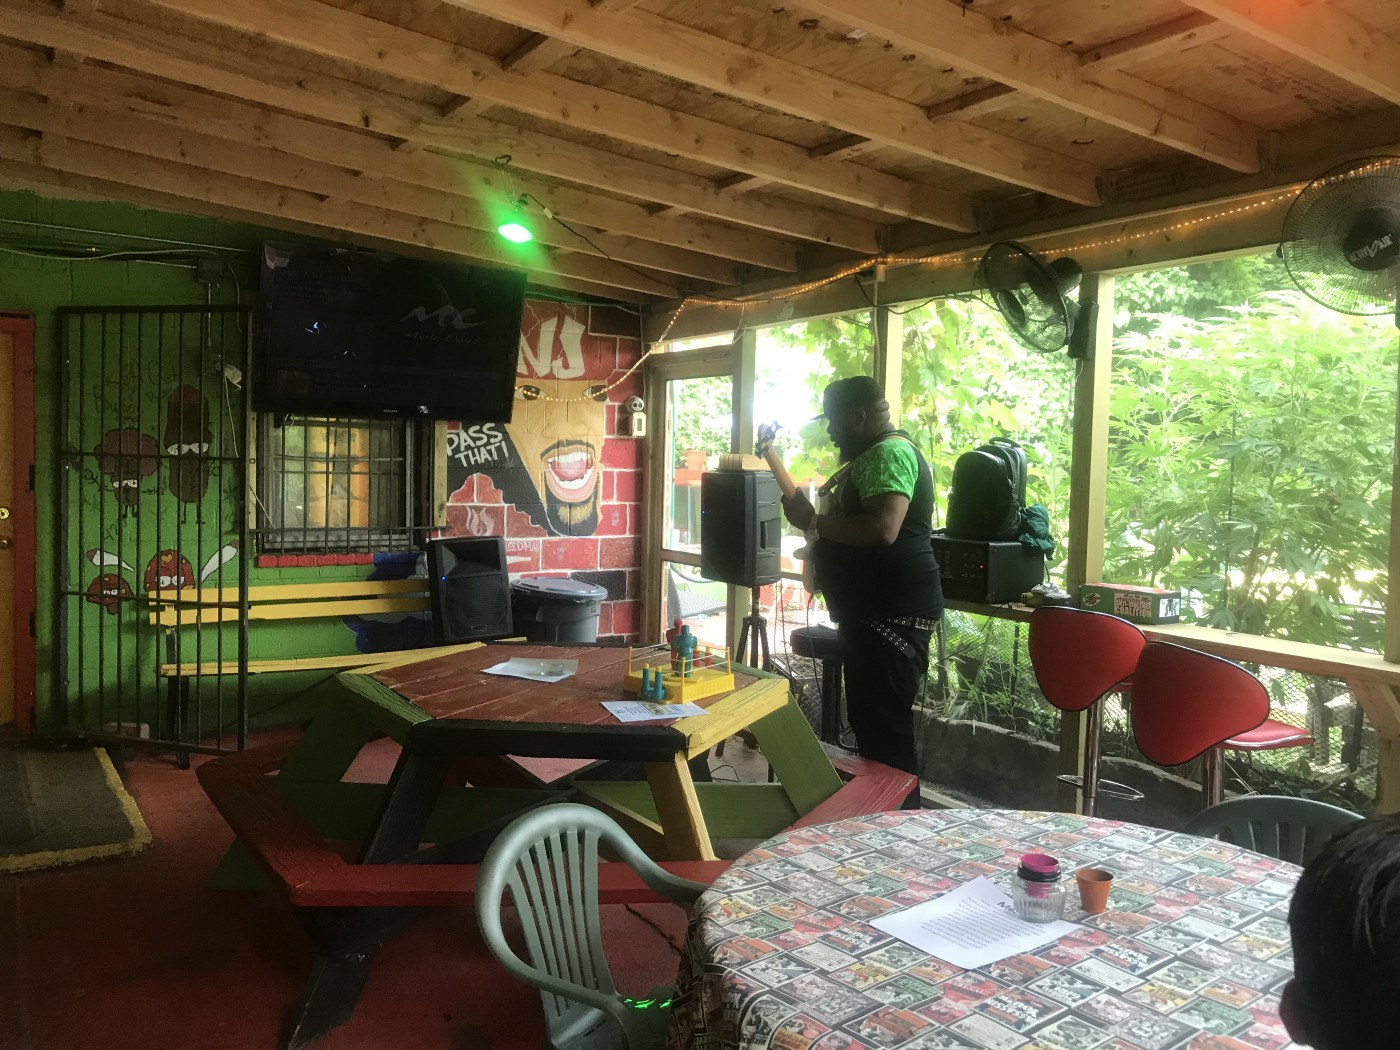 A musician prepares to perform on the back patio of NJ Weedman's Joint.